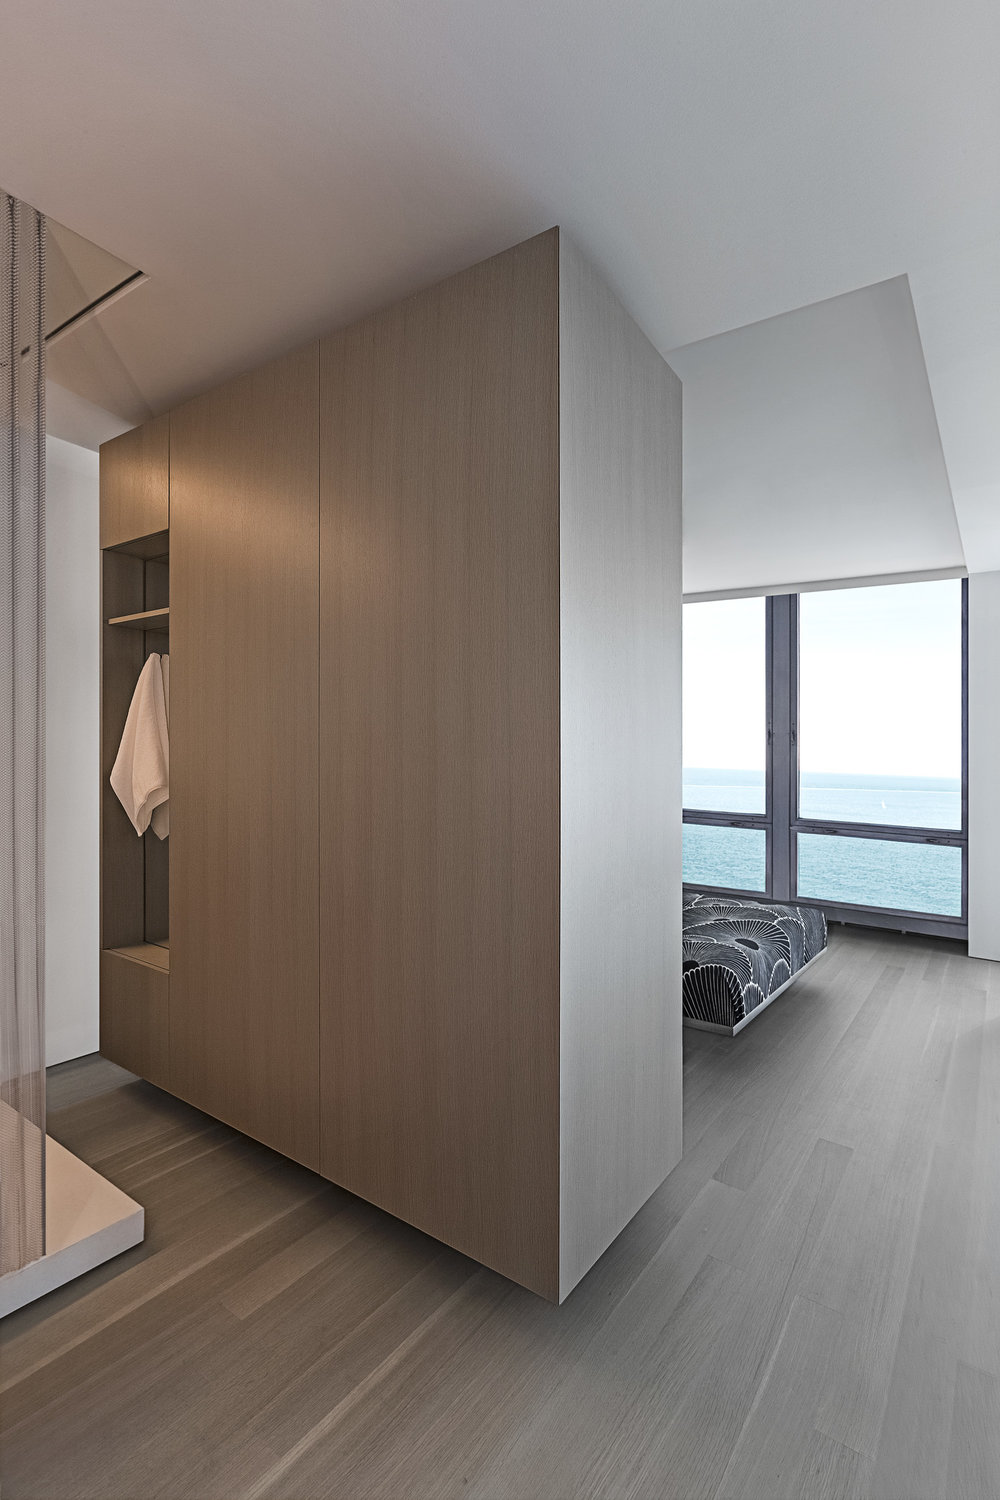 9 C / 880 North Lake Shore Drive / Chicago IL / Vladimir Radutny Architects